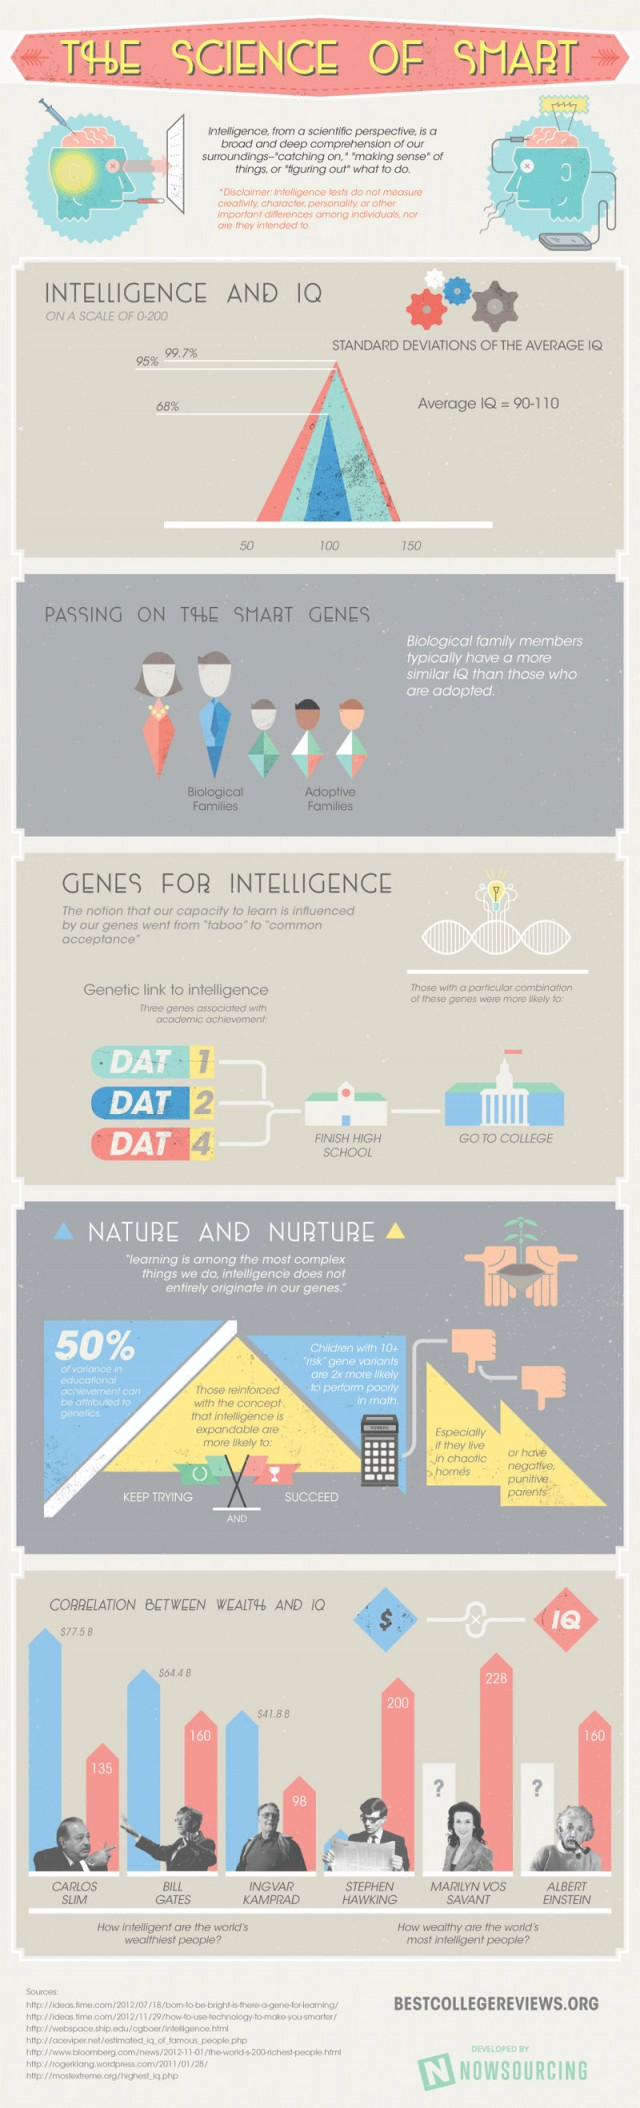 The Science of Smart - nfographic